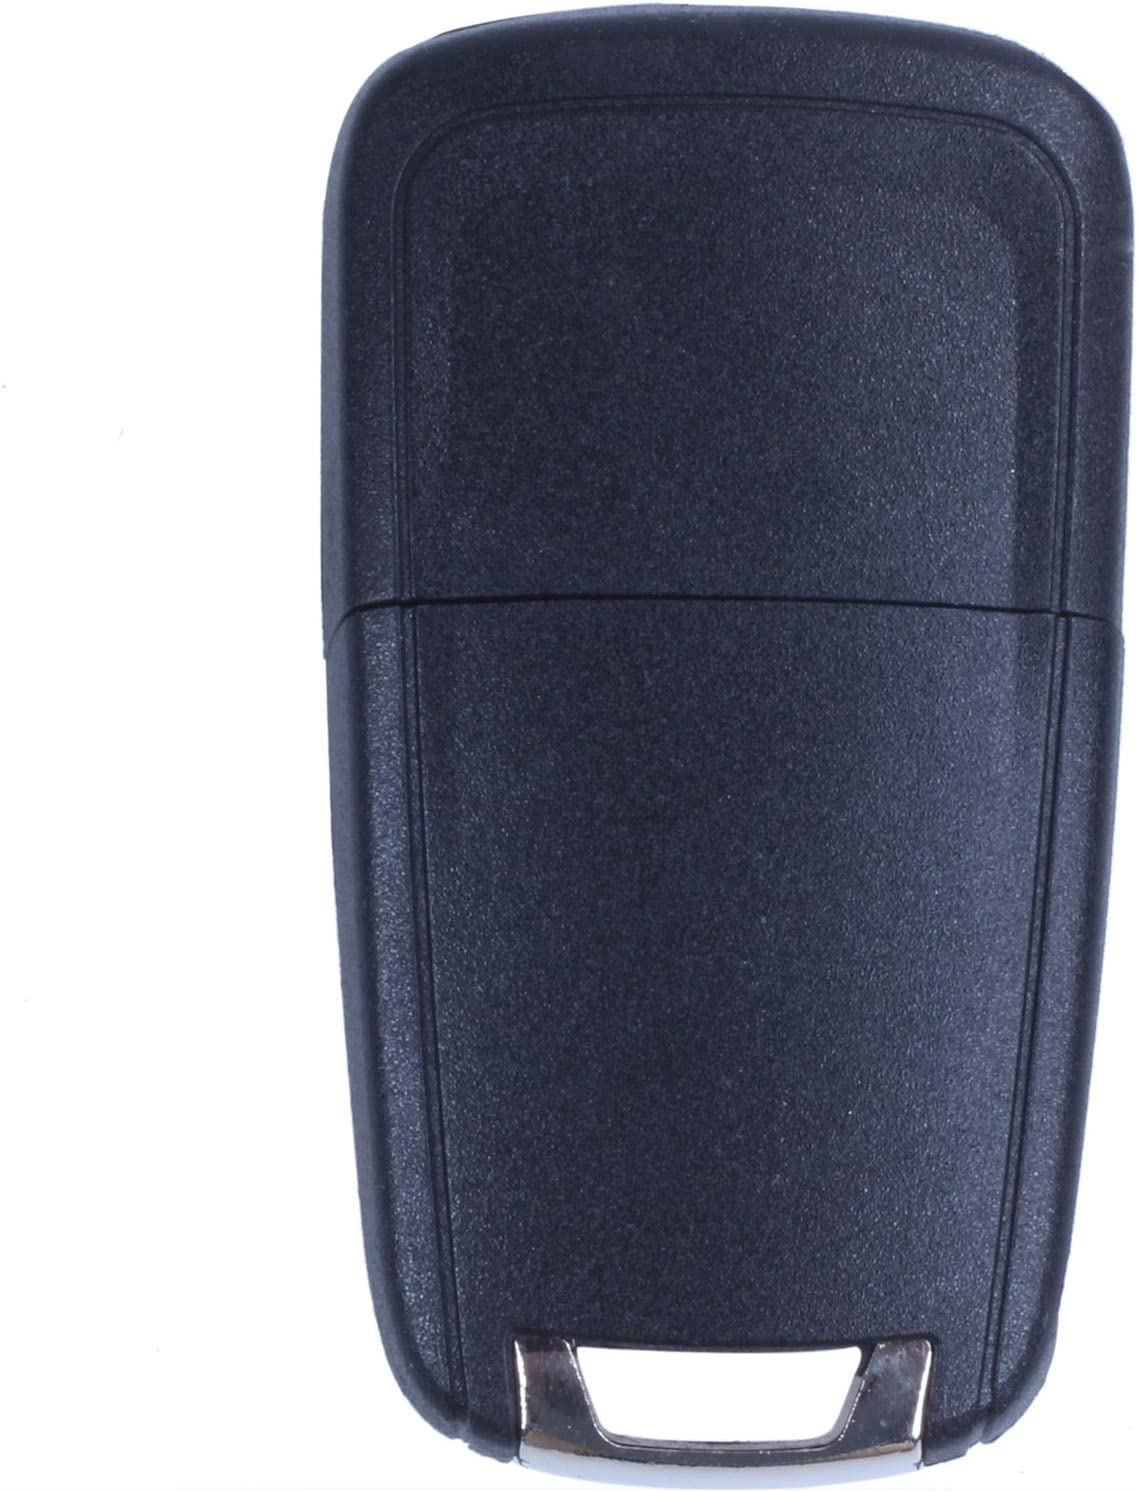 REFURBISHHOUSE Coque Pliable 2 Boutons CLE telecommande Vauxhall Opel Astra Insignia